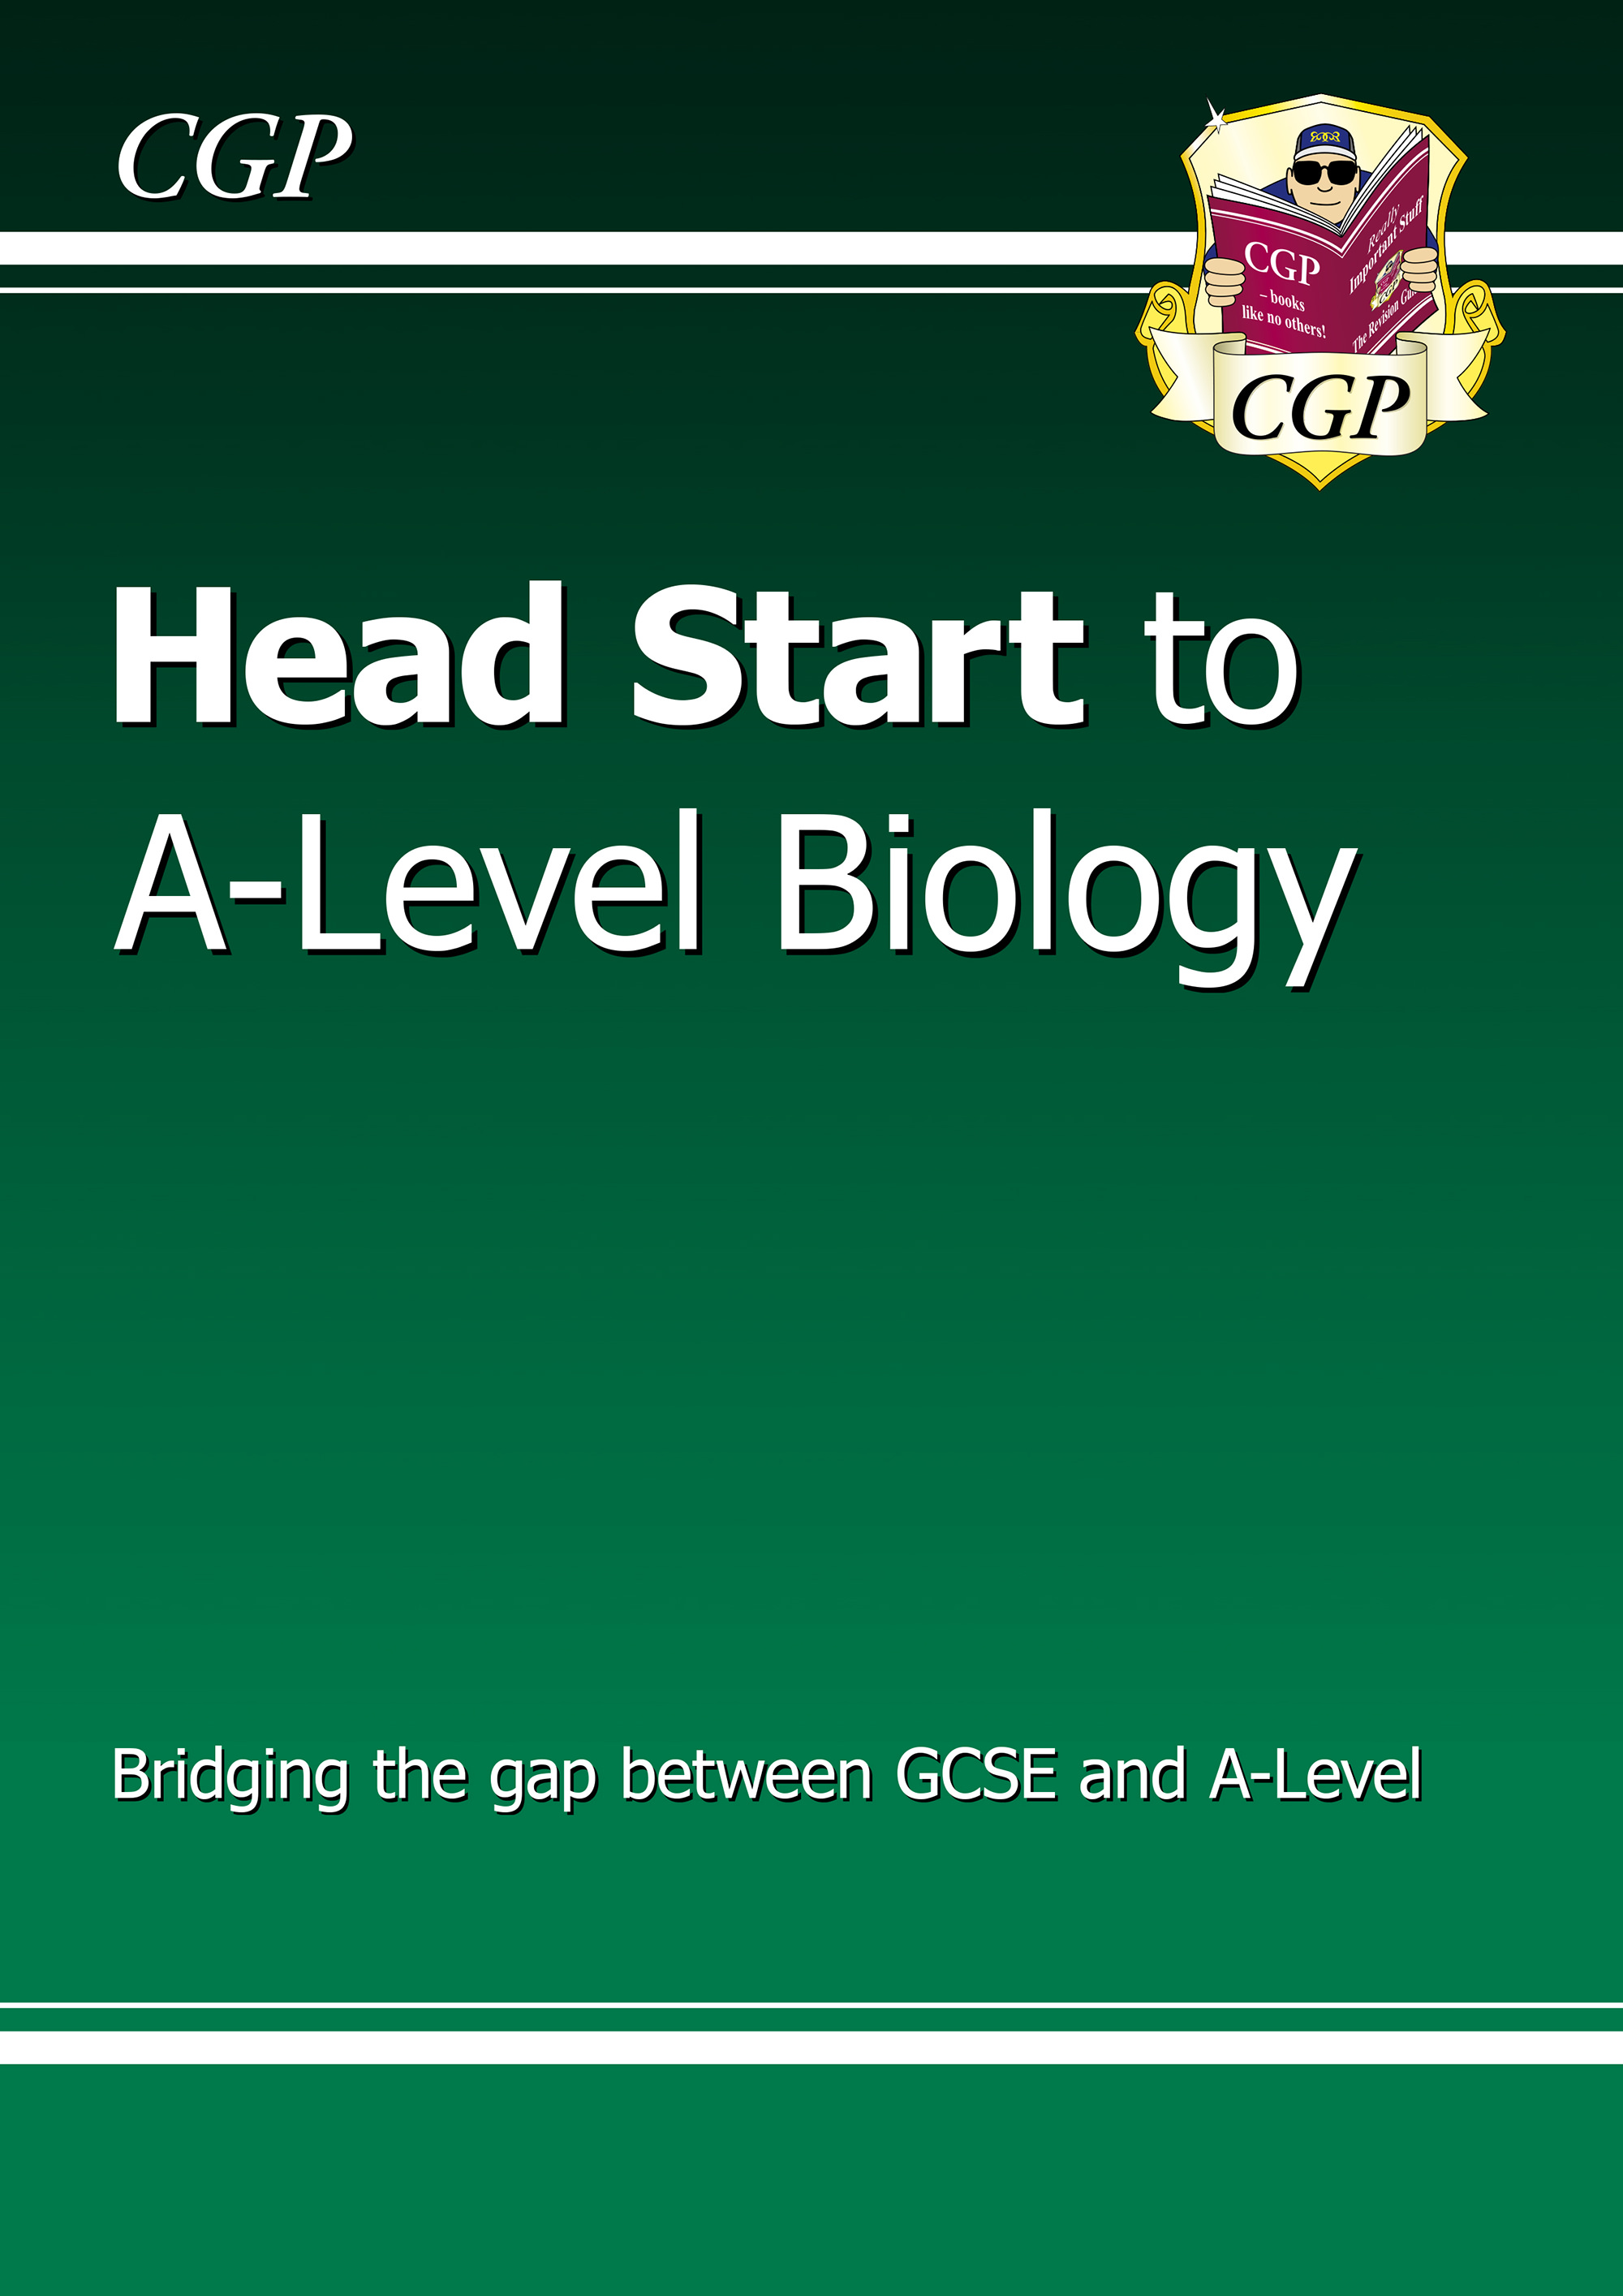 BBR71DK - New Head Start to A-level Biology